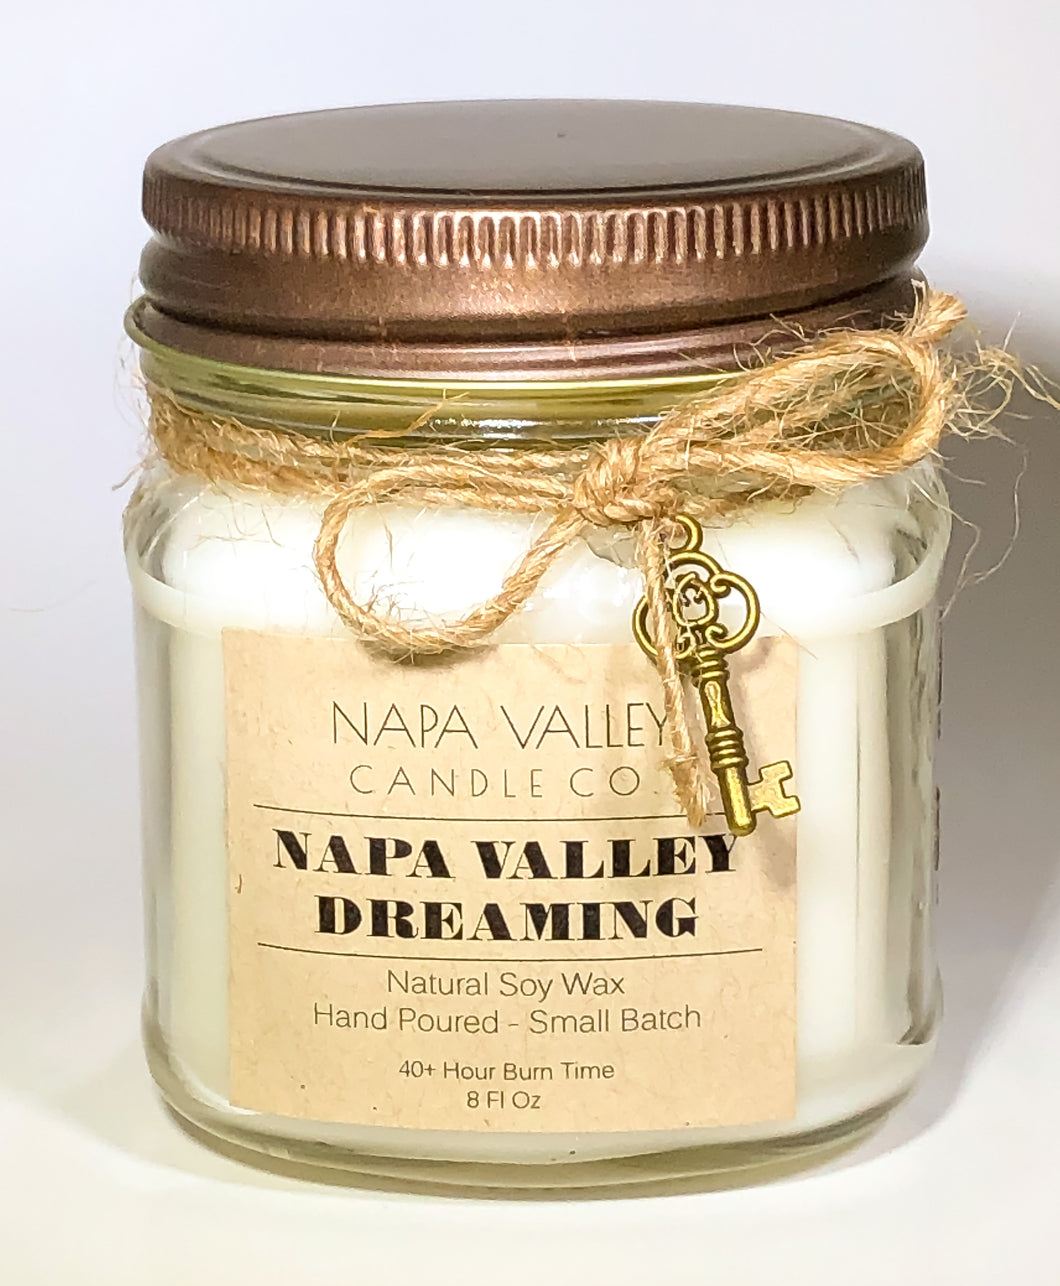 Napa Valley Dreaming 8oz. Candle